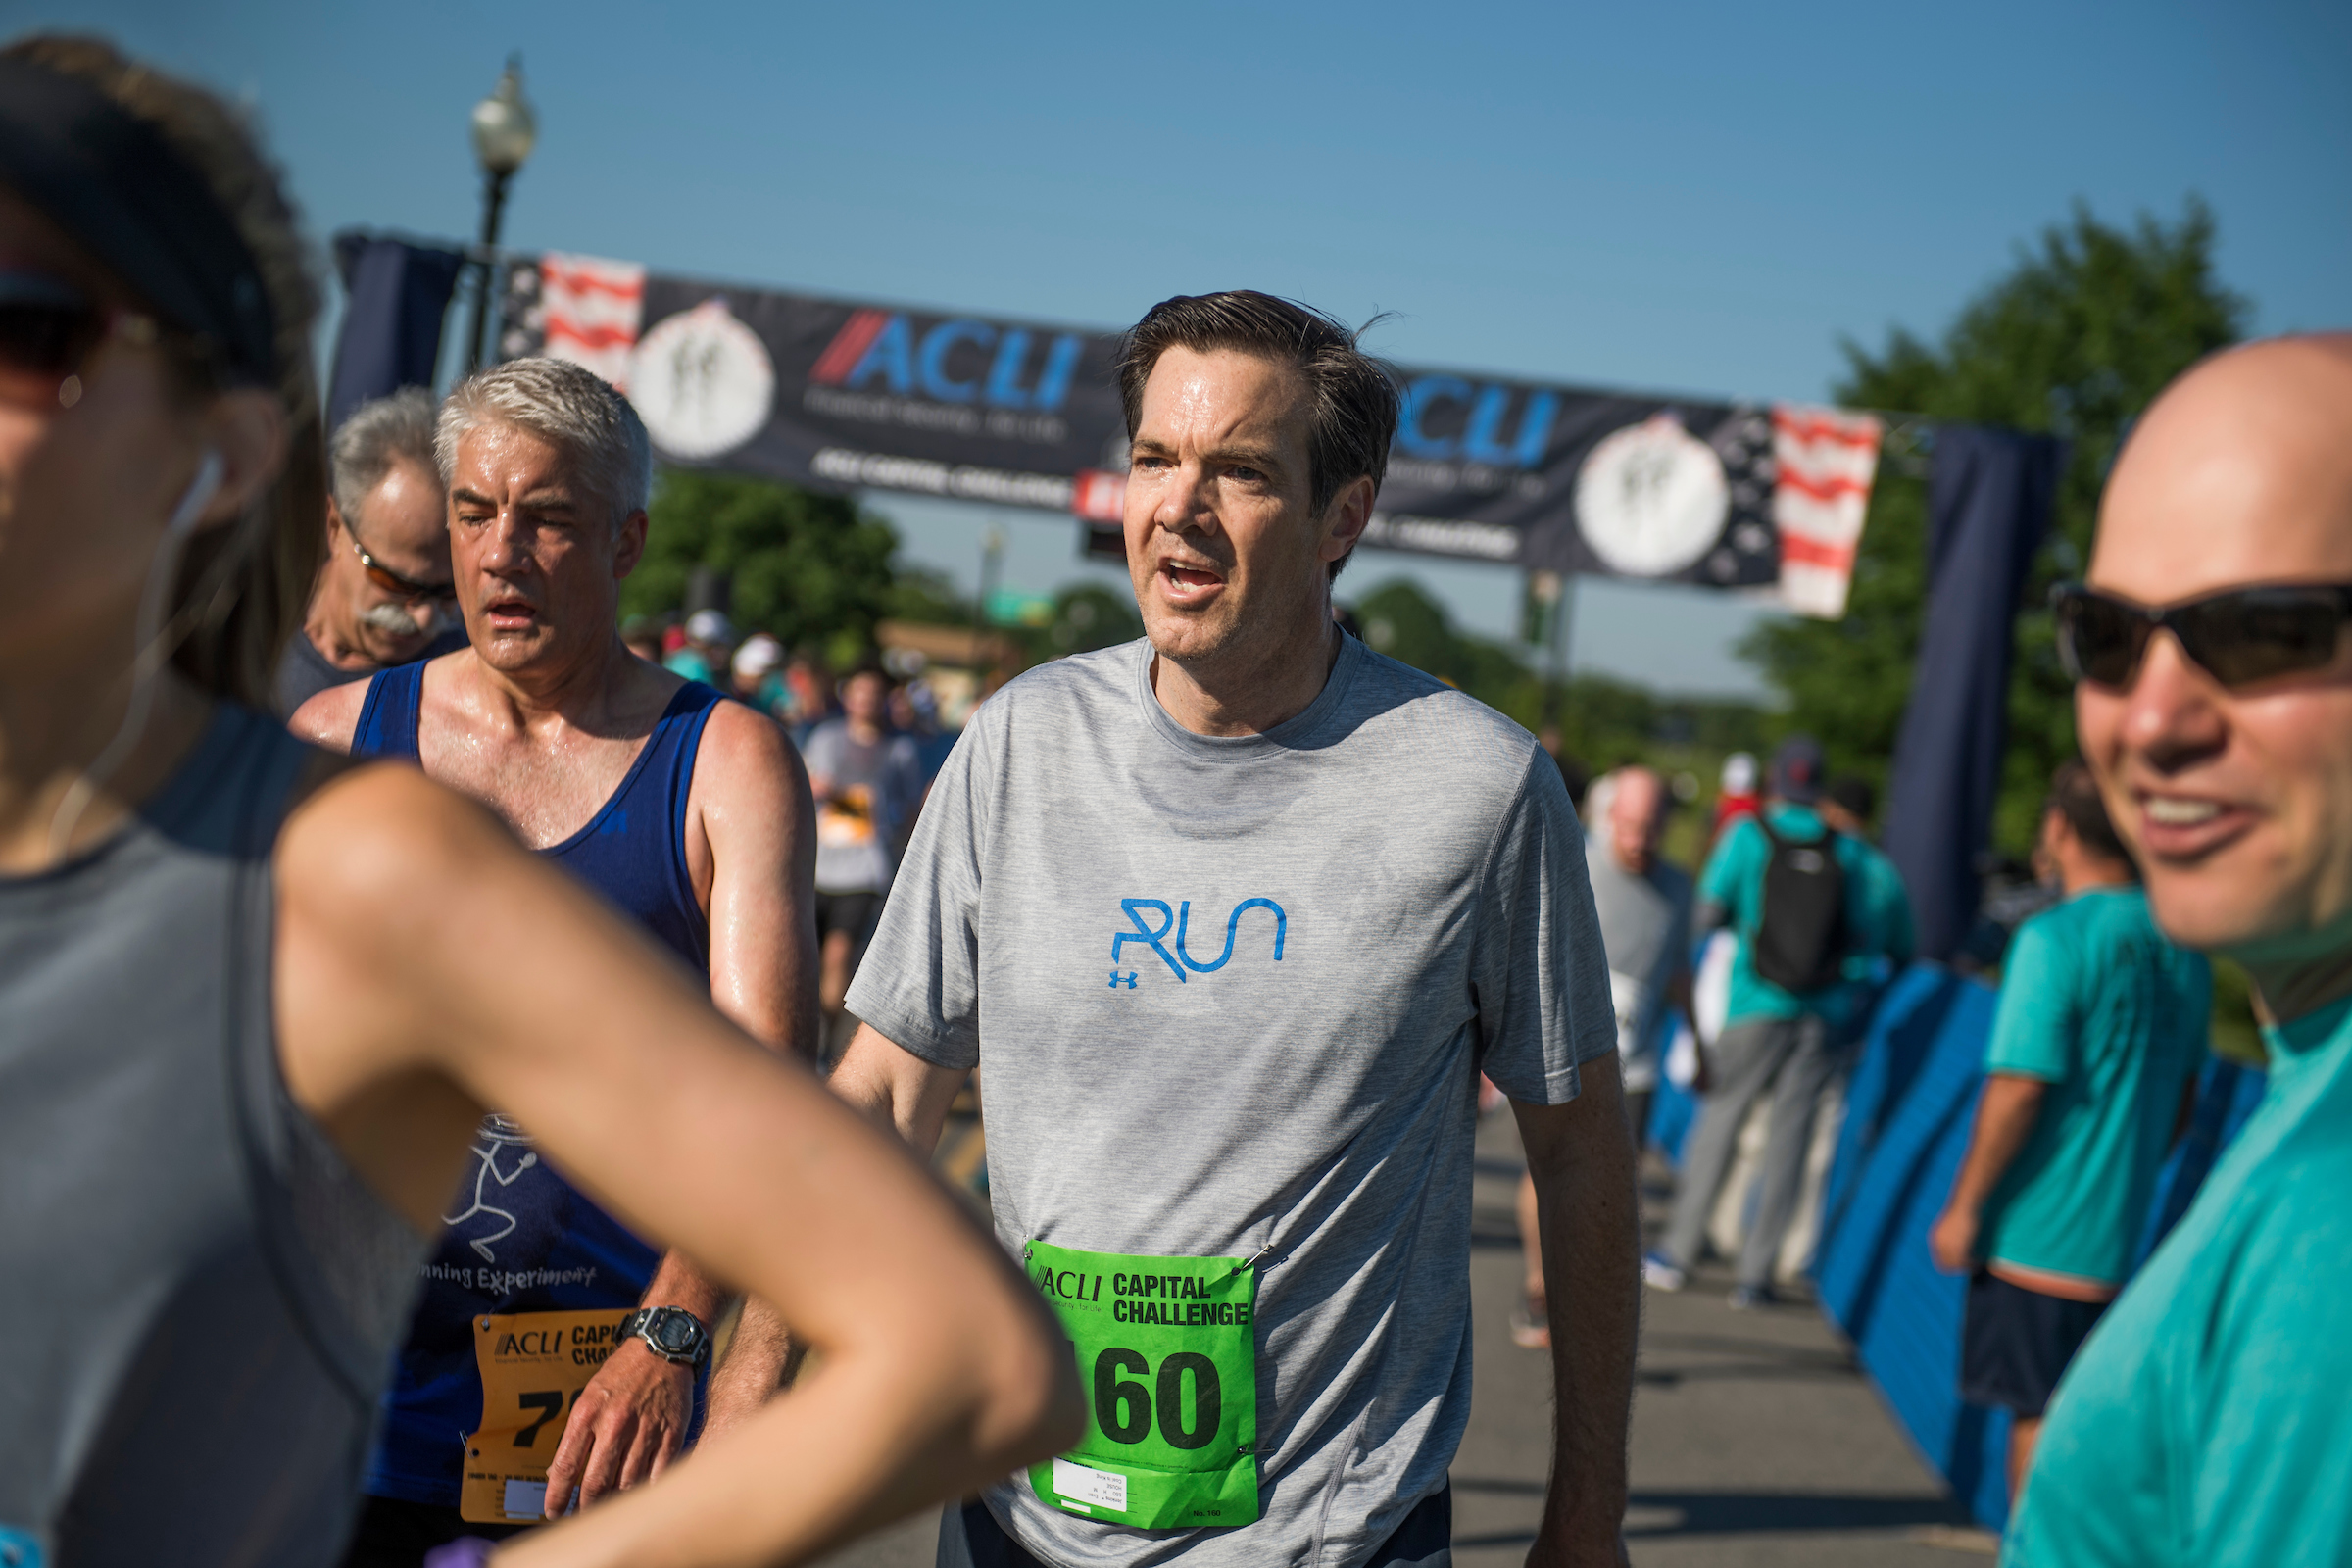 UNITED STATES - MAY 17: Rep. Evan Jenkins, R-W.Va., finishes the ACLI Capital Challenge 3 Mile Team Race in Anacostia Park, May 17, 2017. (Photo By Tom Williams/CQ Roll Call)